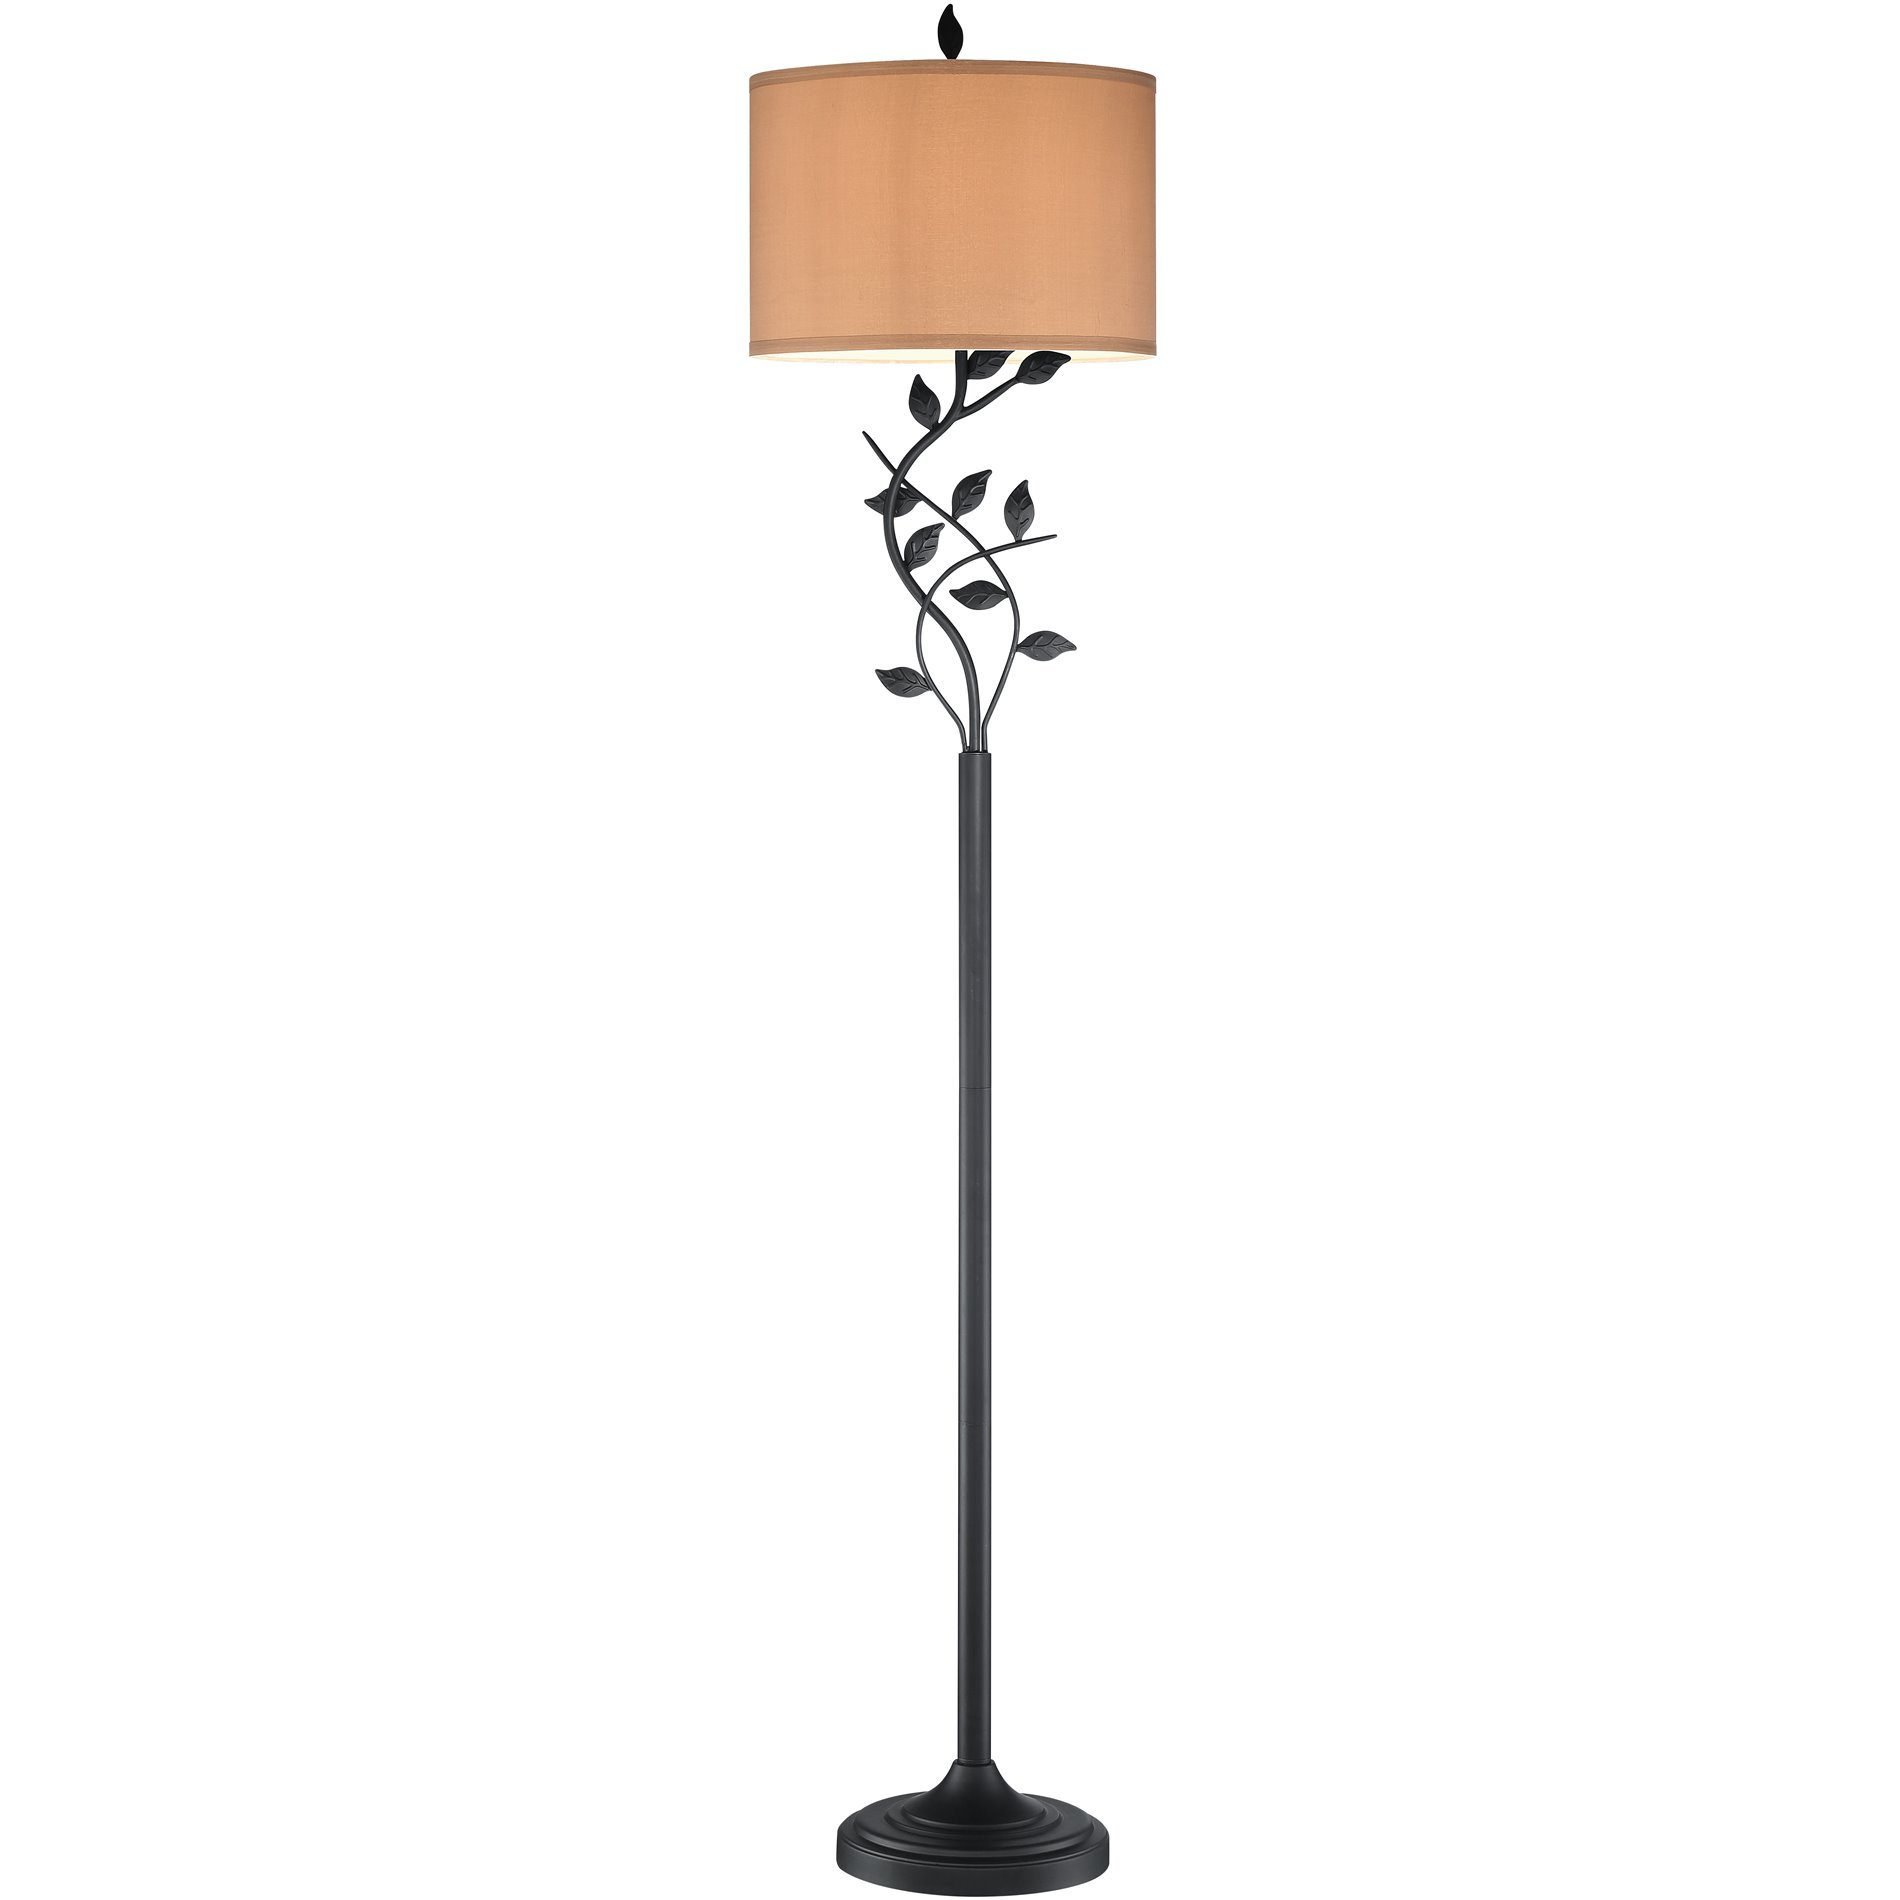 Revel Ambrose 58'' Matte Black Floor Lamp + 10.5W LED Bulb, Energy Efficient, Eco-Friendly, Intricate Leafs Design, Gold Bronze Iridescent Shade